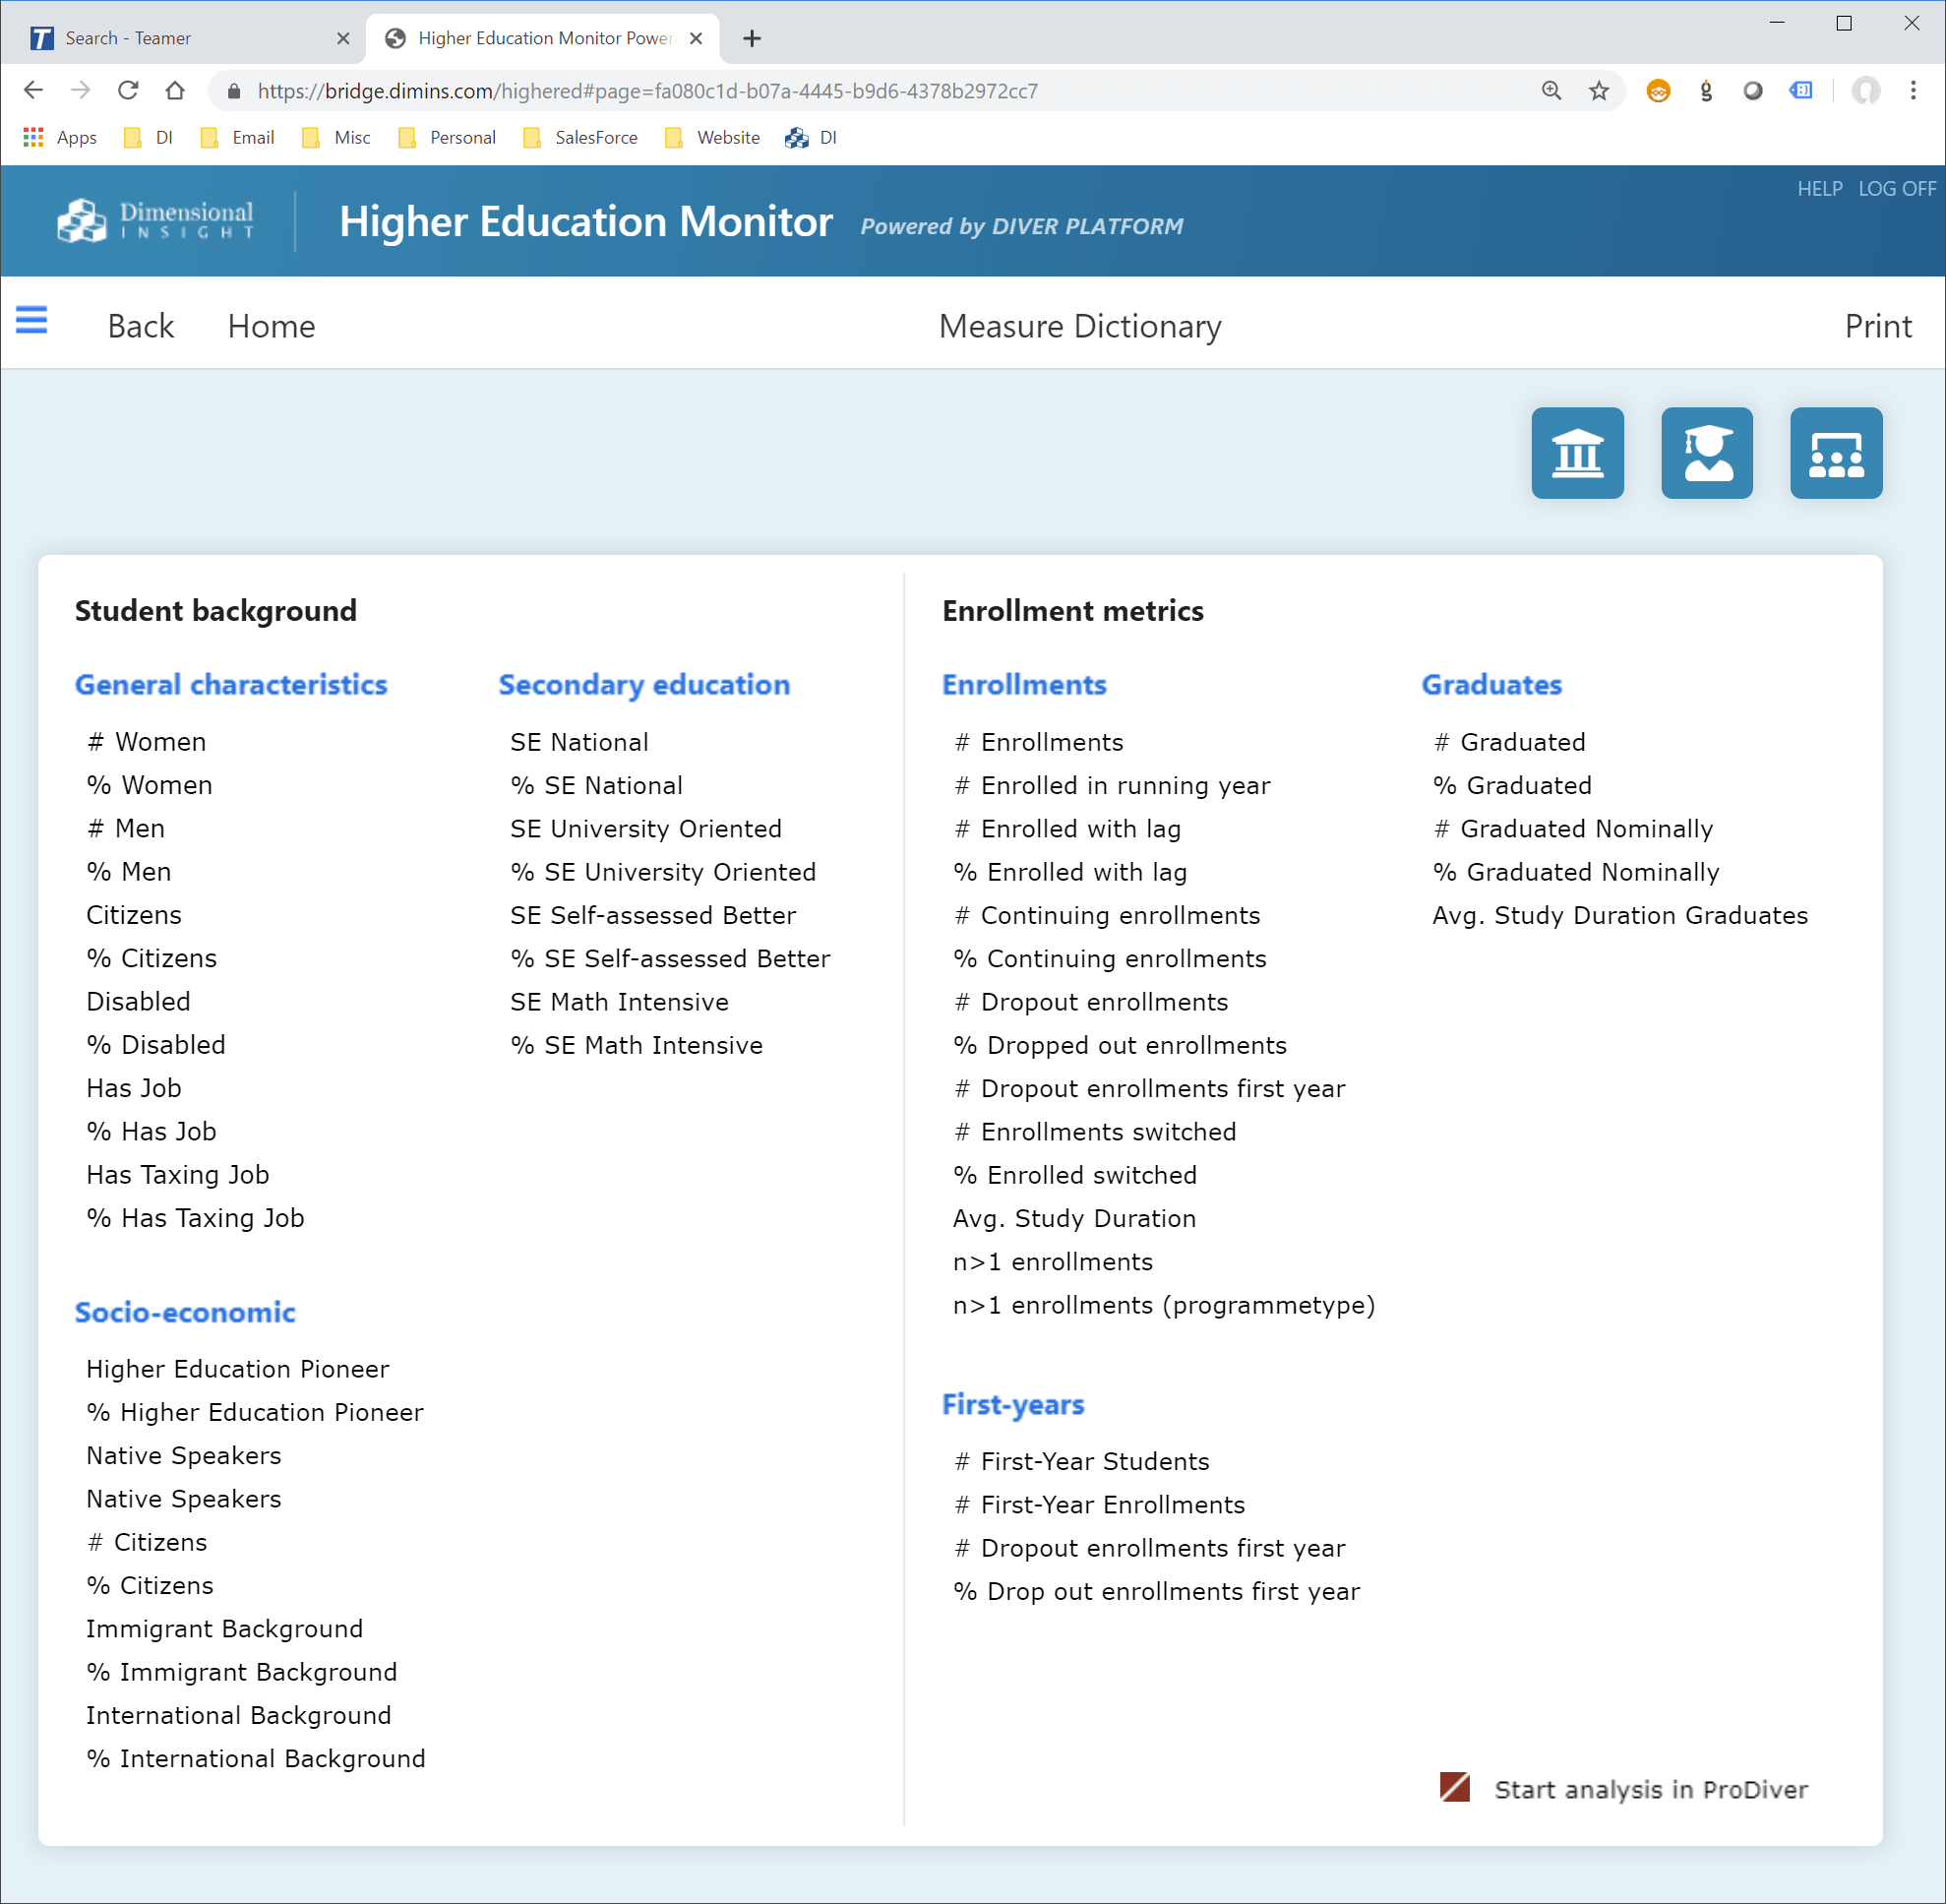 Measure Dictionary